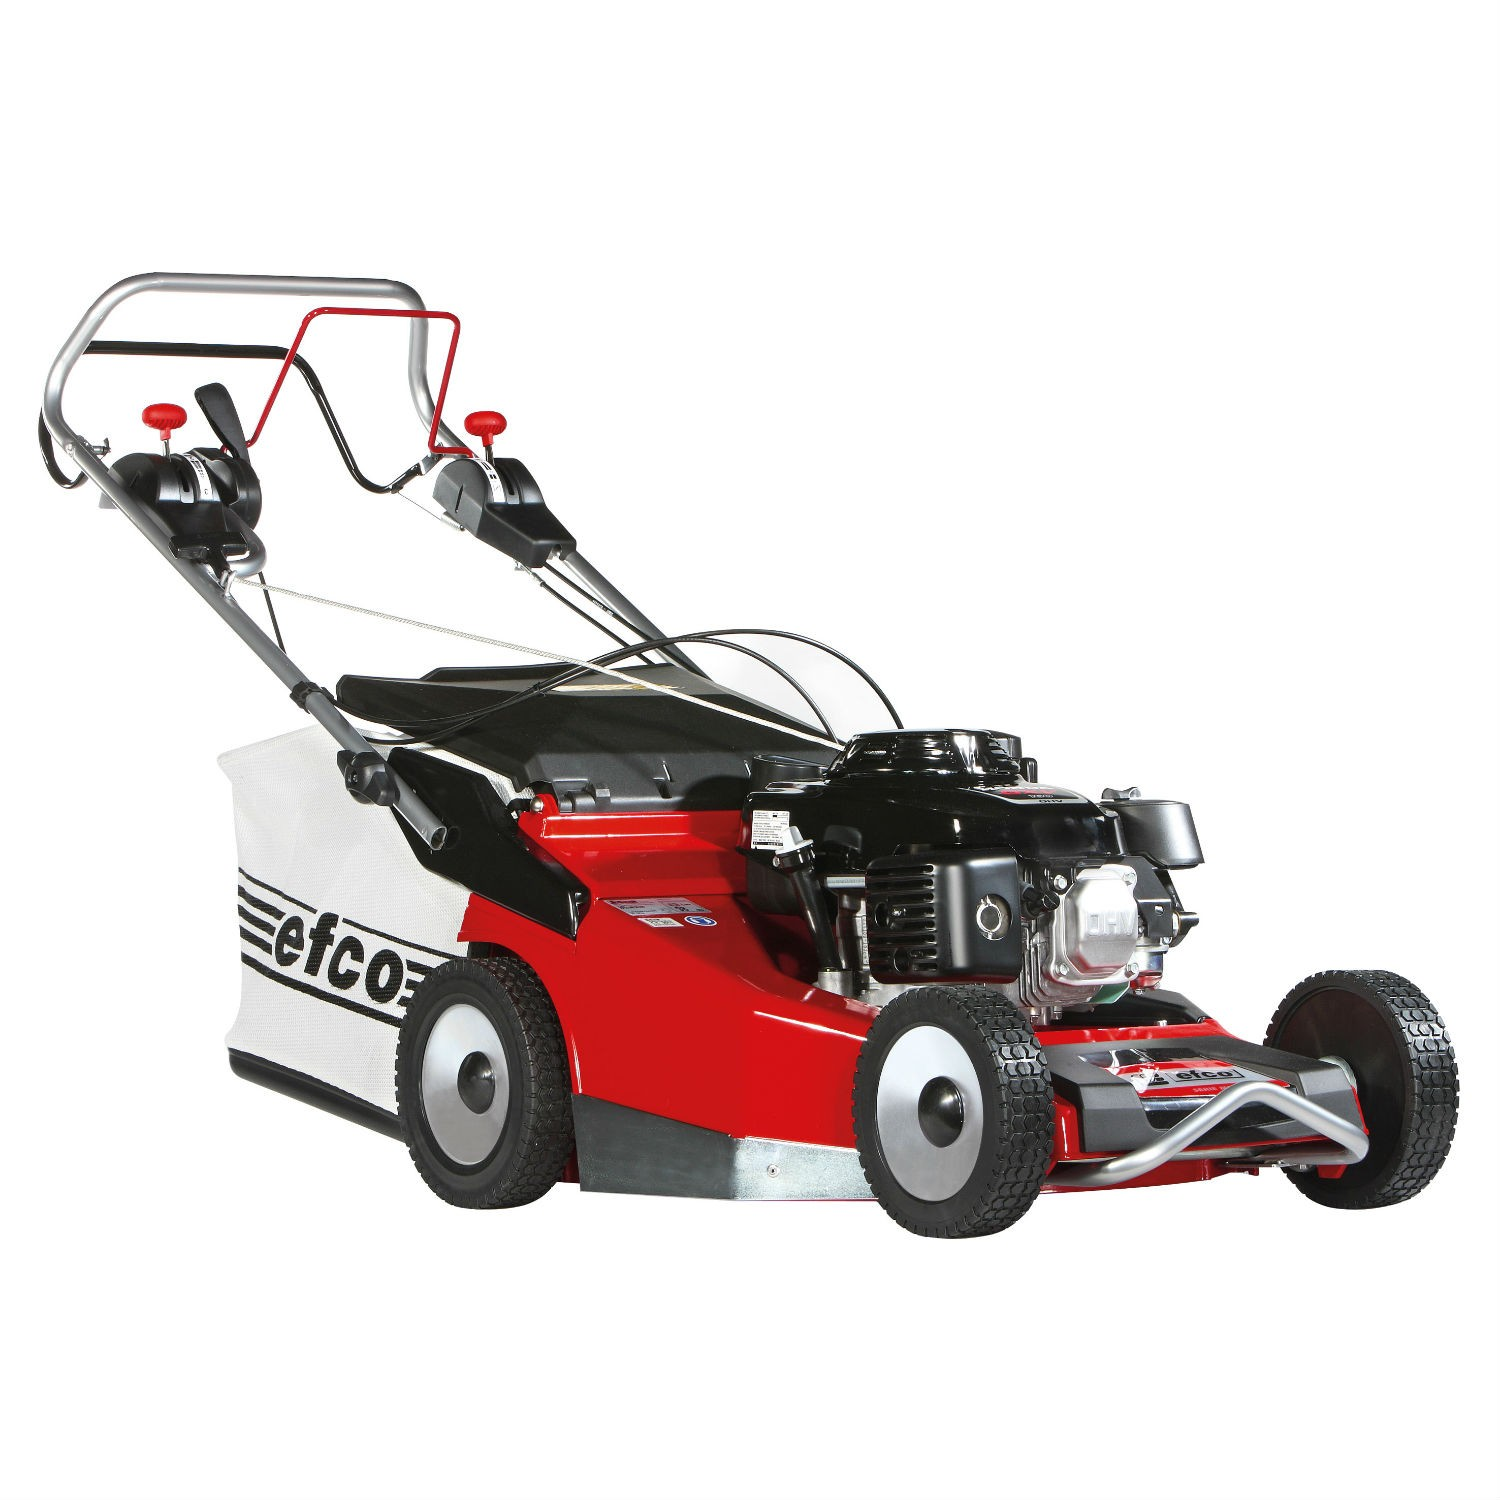 Efco MR55-HXF Self-Propelled Petrol Lawn Mower (Aluminium Deck)